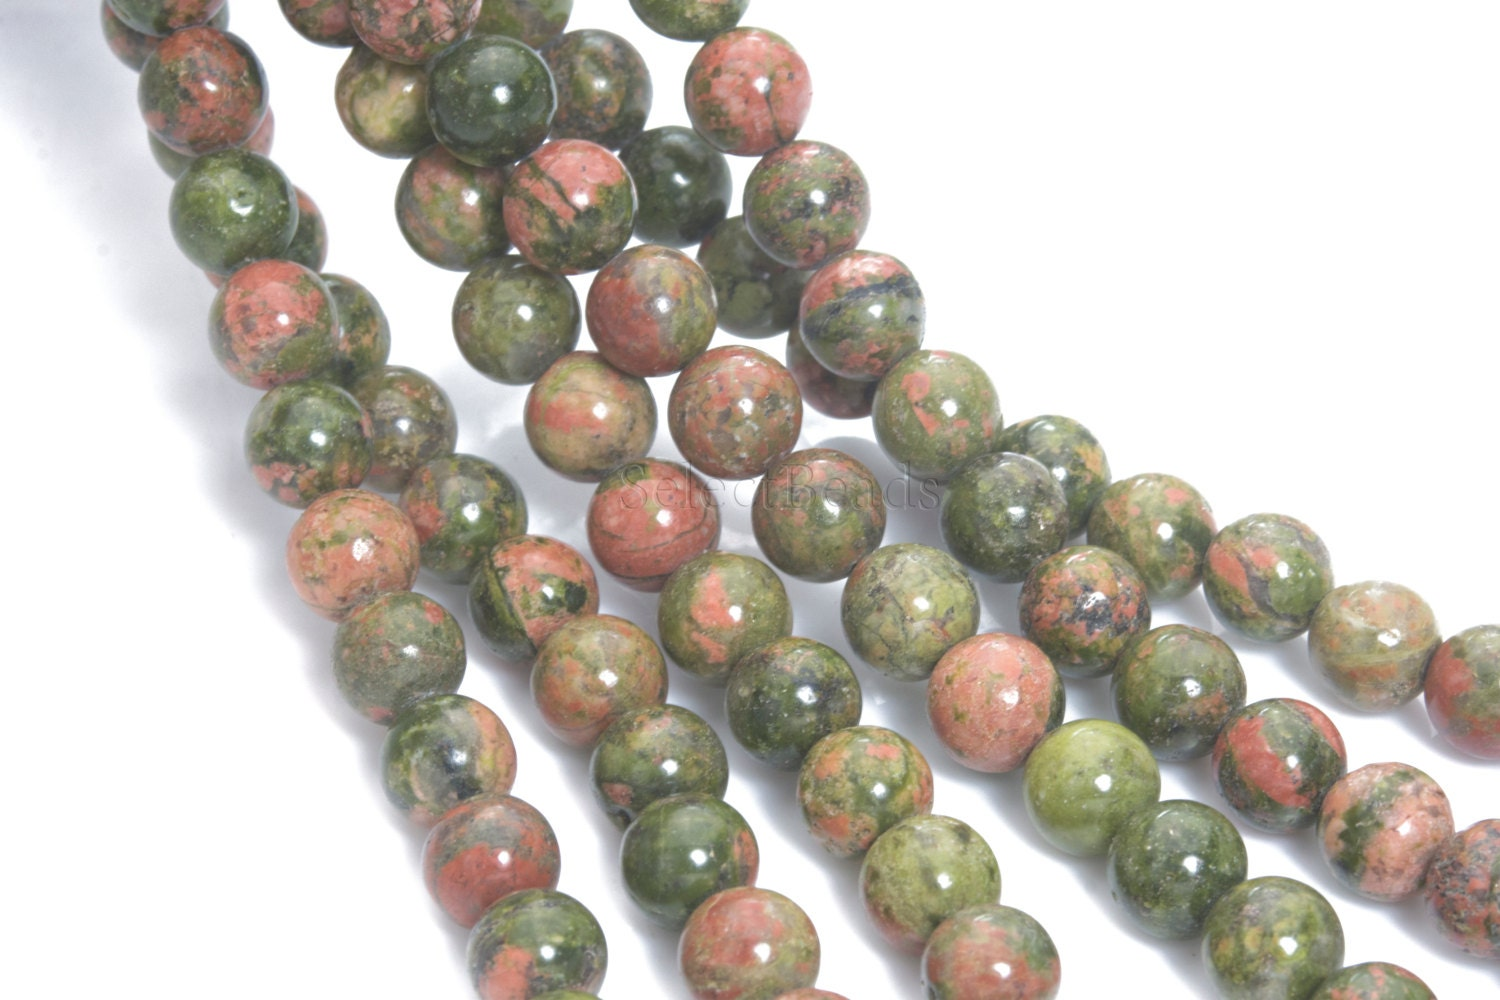 tumbled gemstone healing buy crystals shop unakite australia crystal learn and online stones